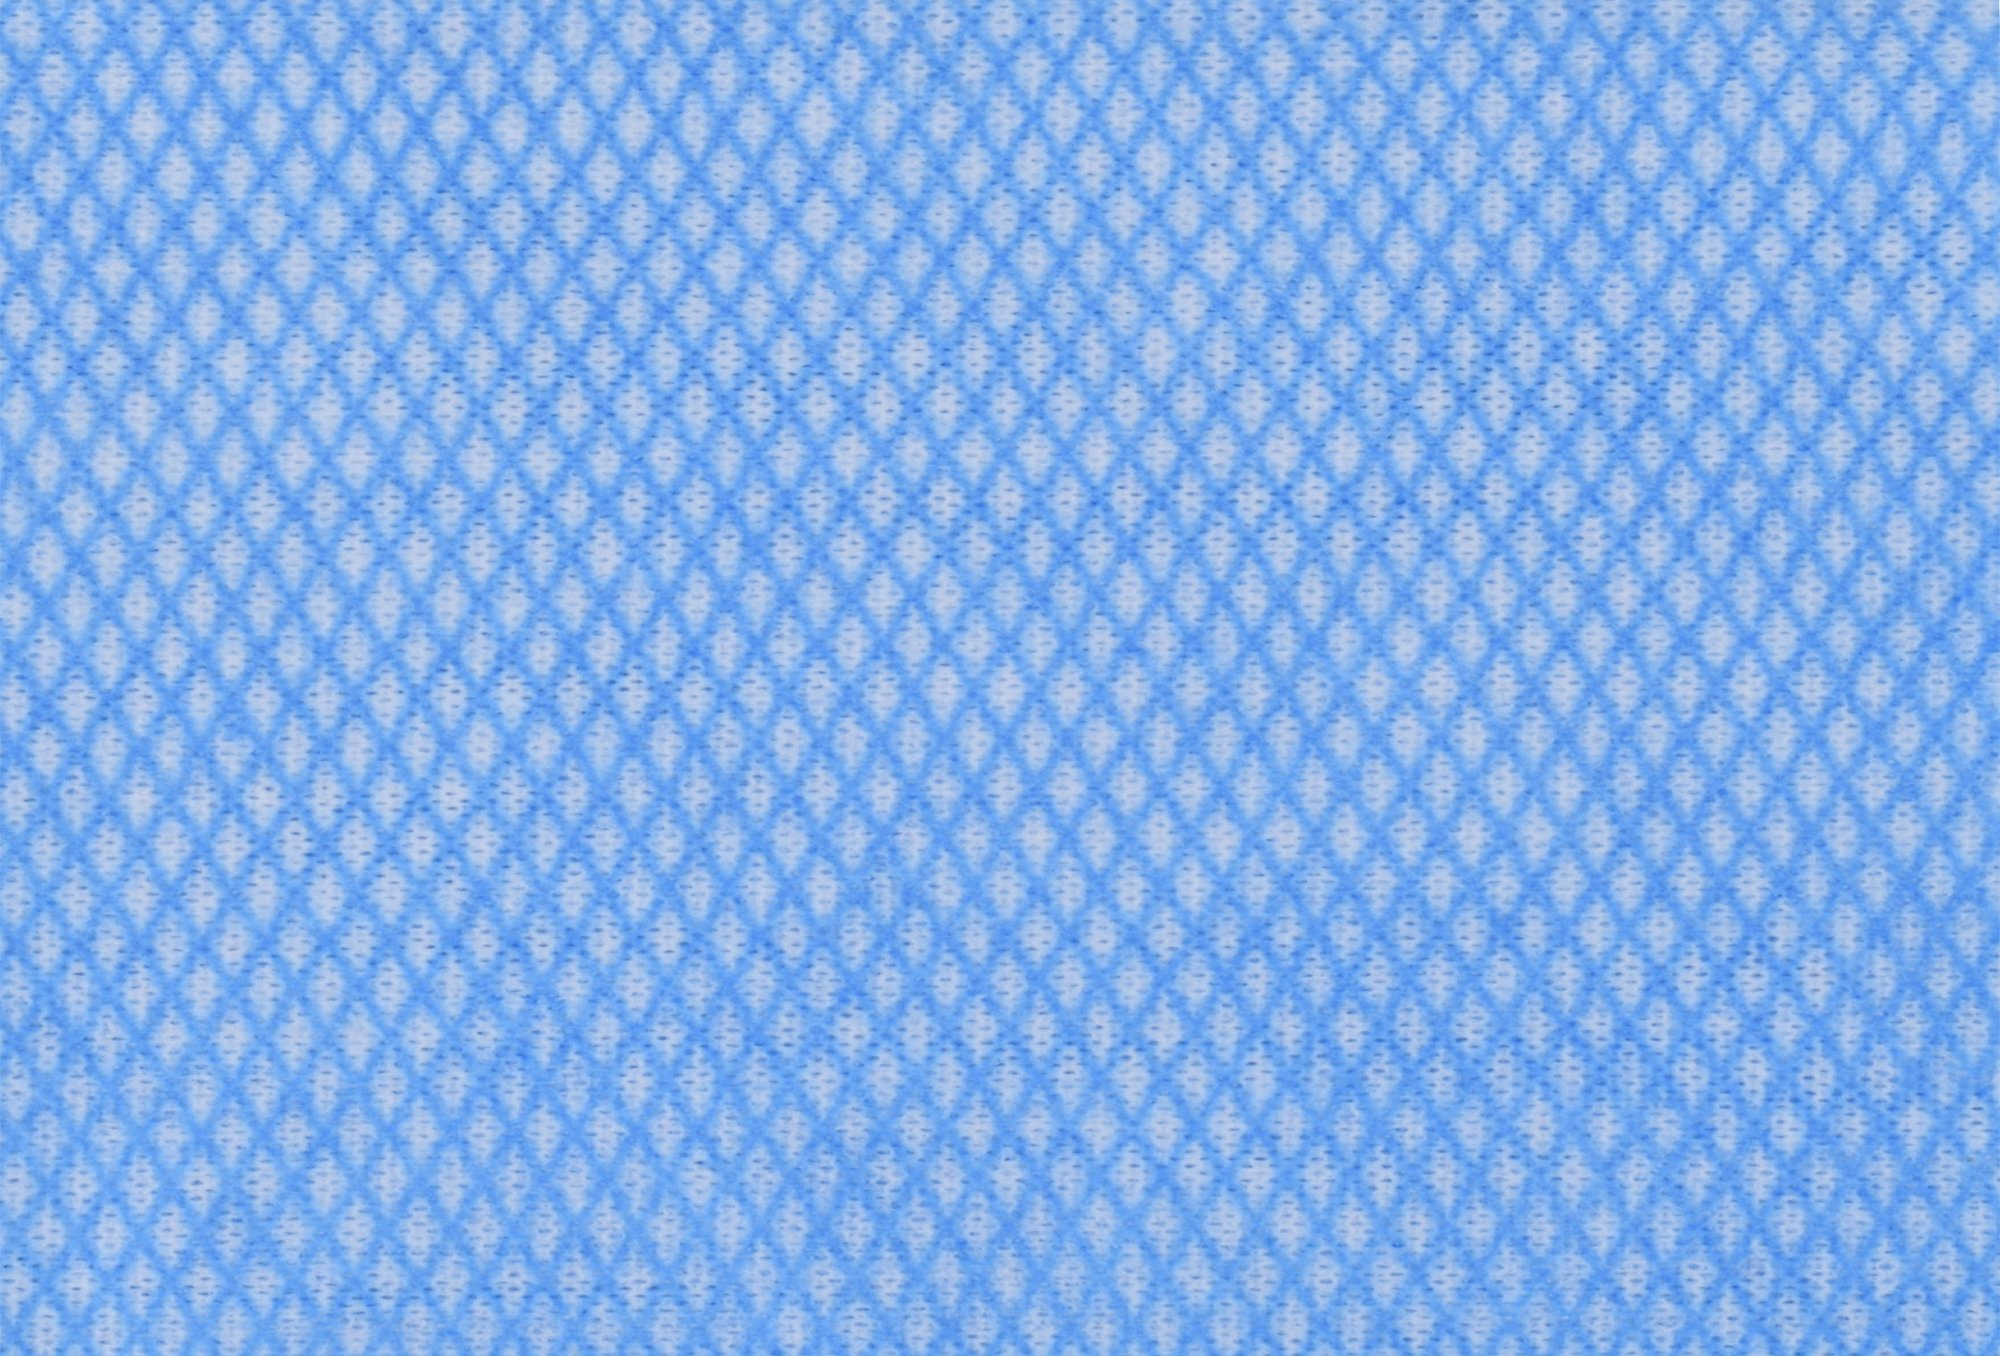 Tork 192181A Foodservice Cloth, 1/4 Fold, 1-Ply, 13'' Width x 21'' Length, Blue/White (Case of 1 Box, 240 Cloths) by Tork (Image #4)